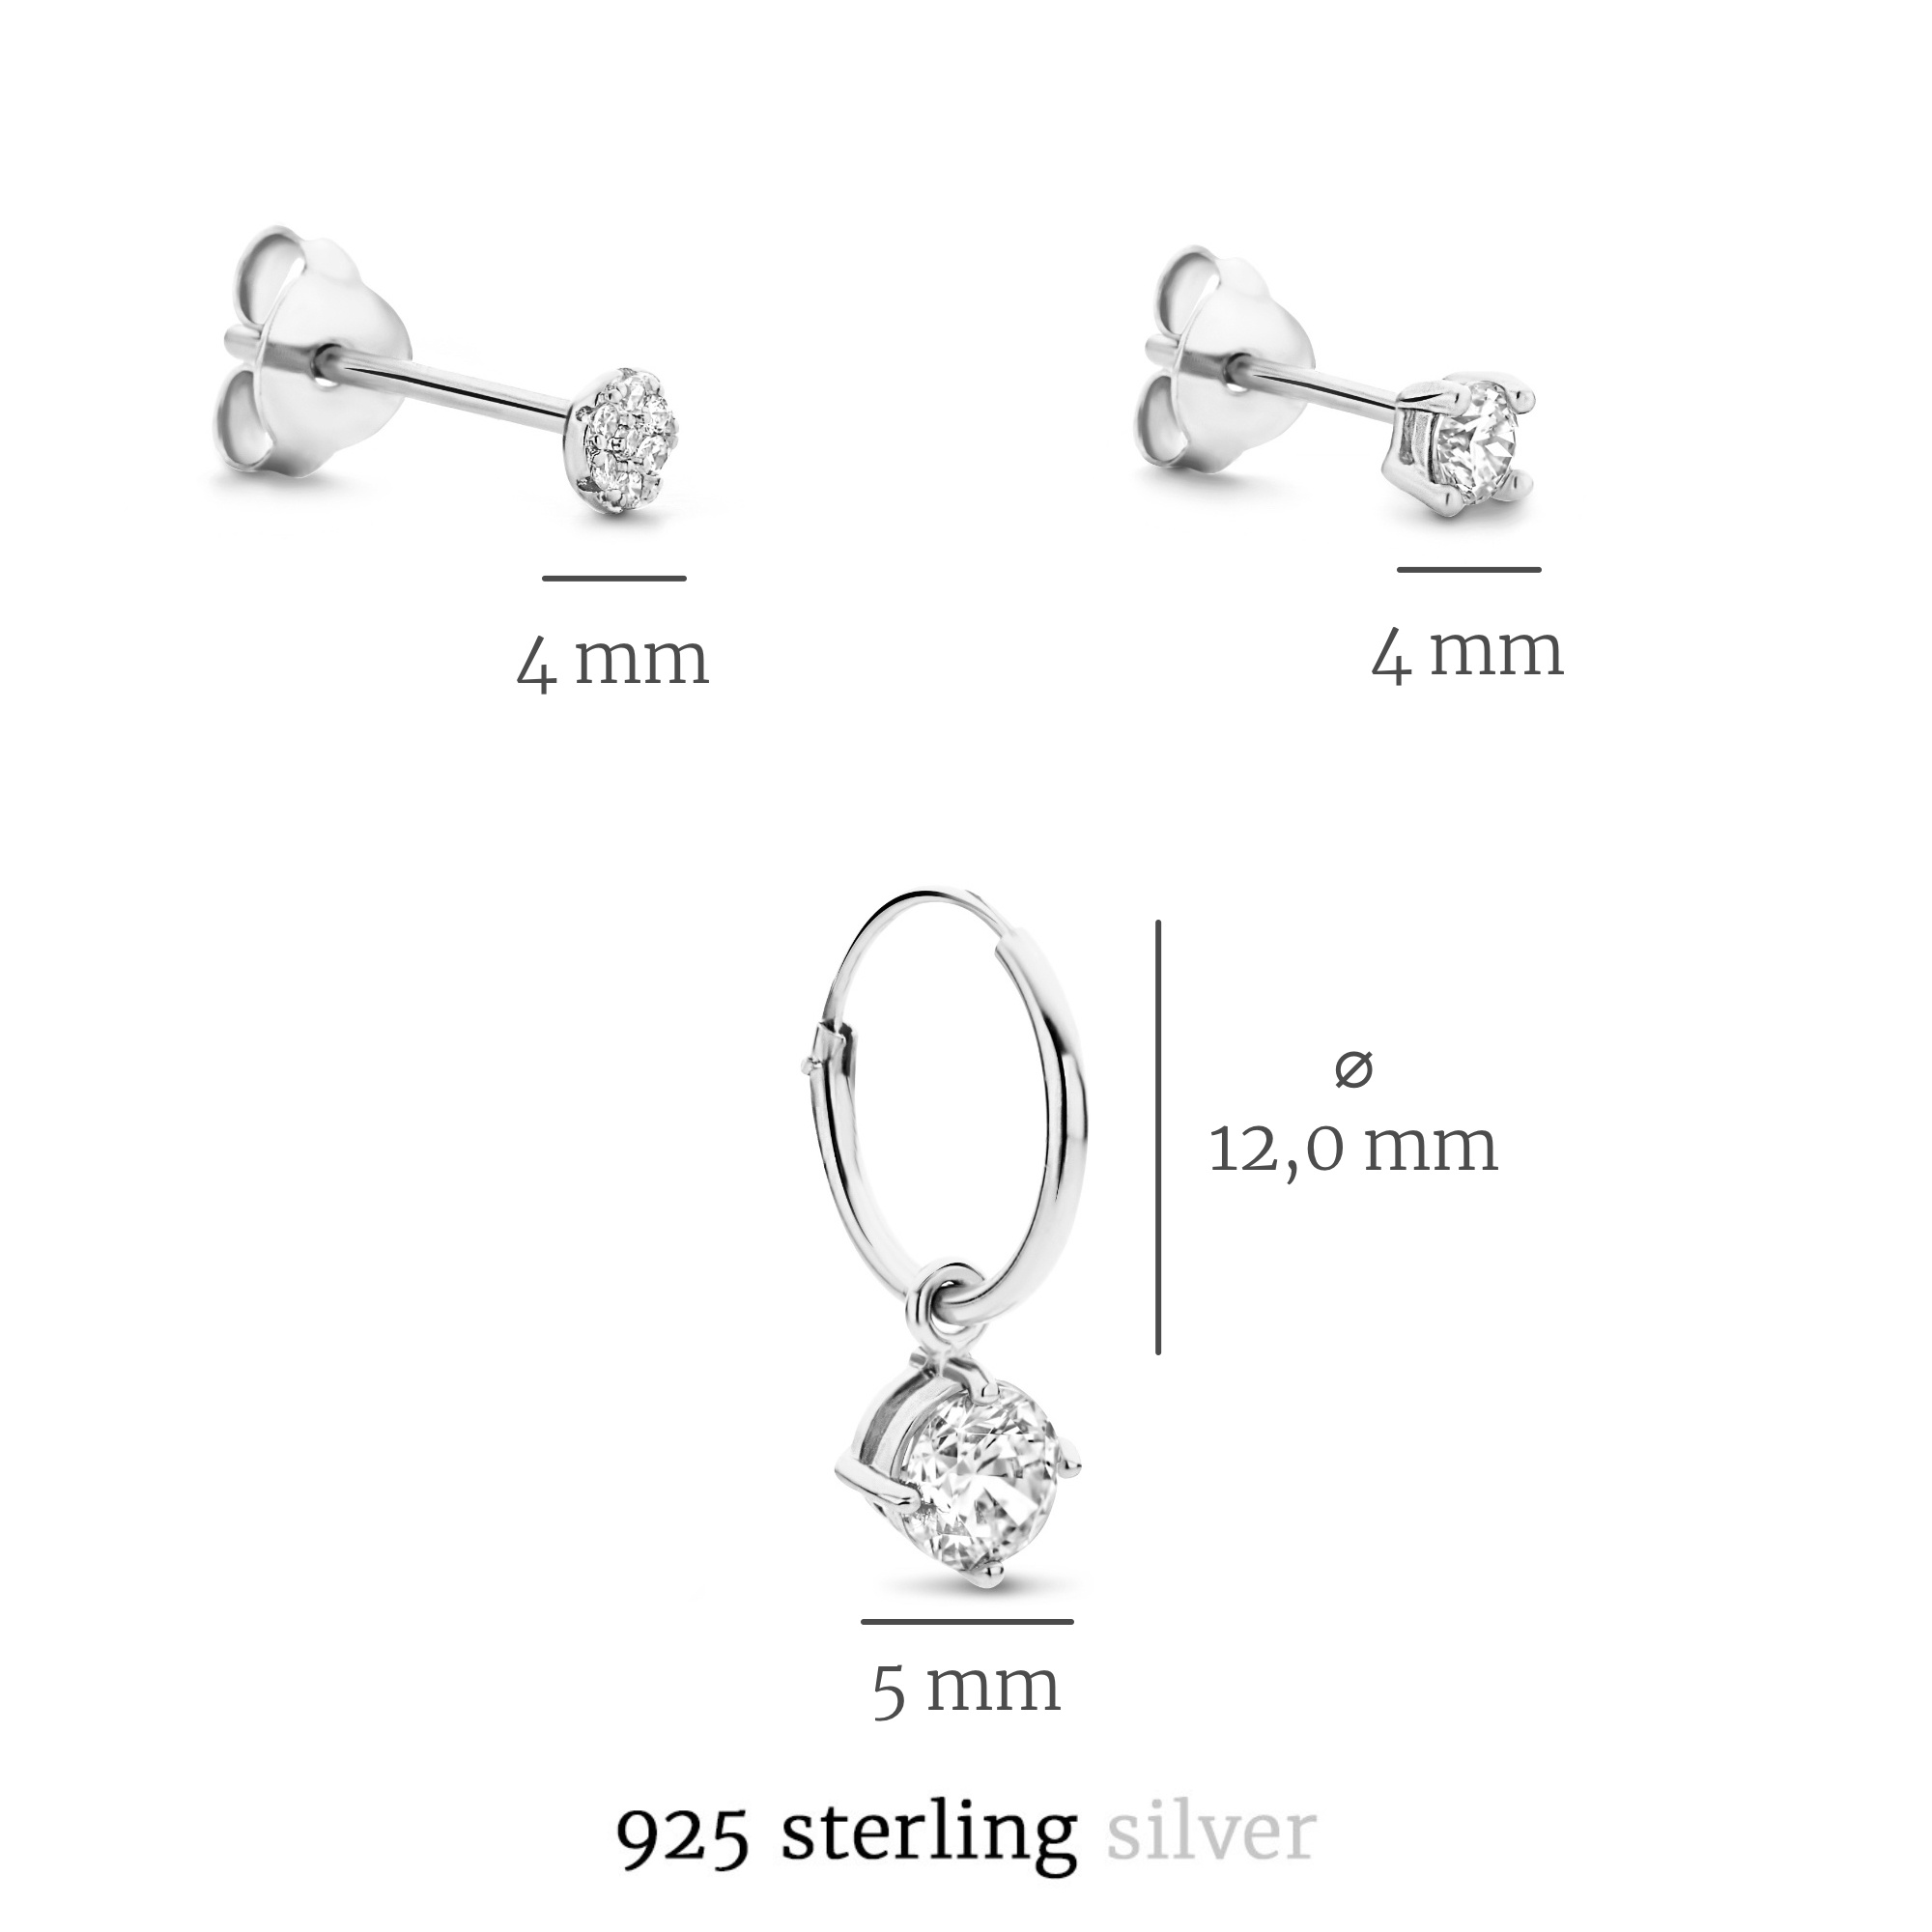 Selected Jewels Selected Gifts 925 sterling silver set of 3 pairs of earrings